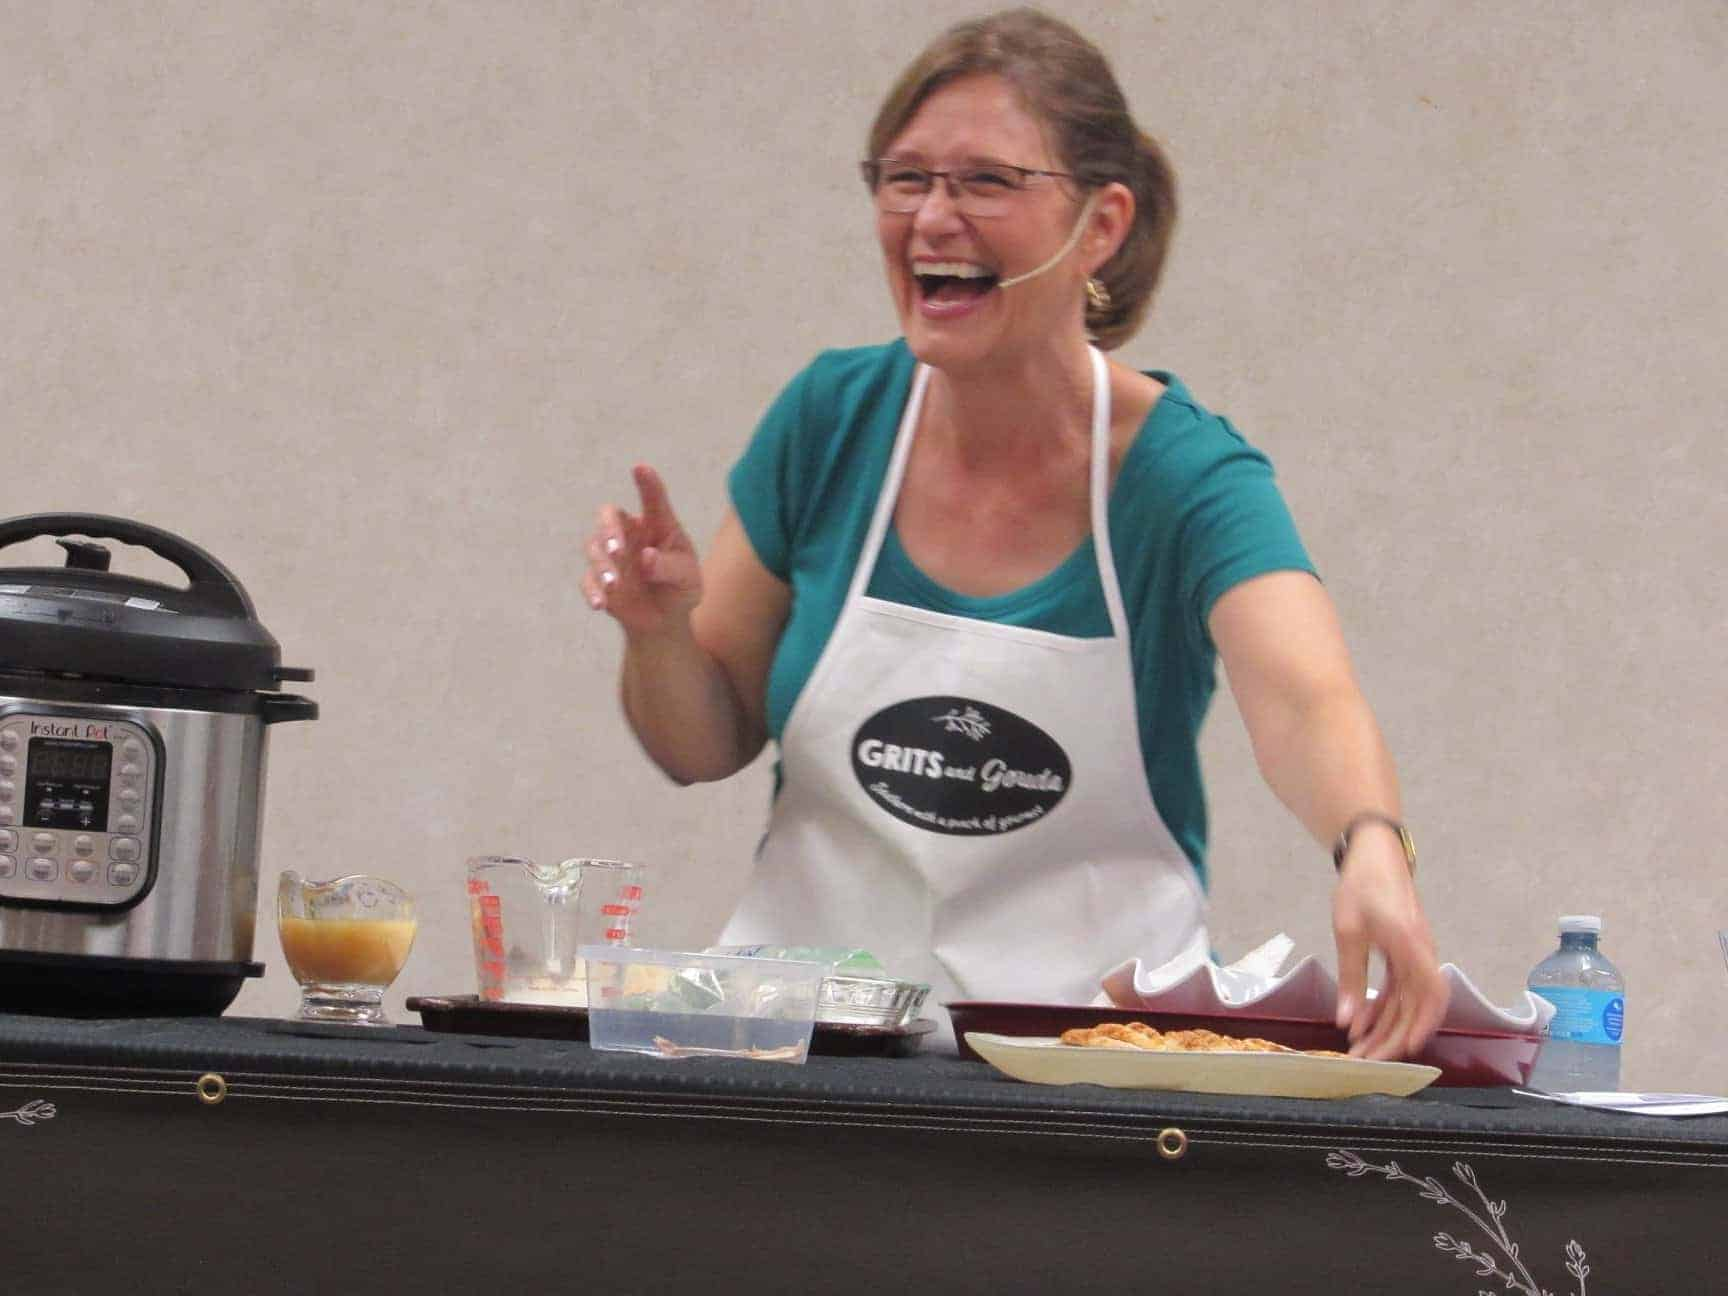 Kathleen Royal Phillips teaches Instant Pot classes and a Holiday Cooking Show. Her Southern shortcut recipes are easy and she always makes sure everyone has fun.